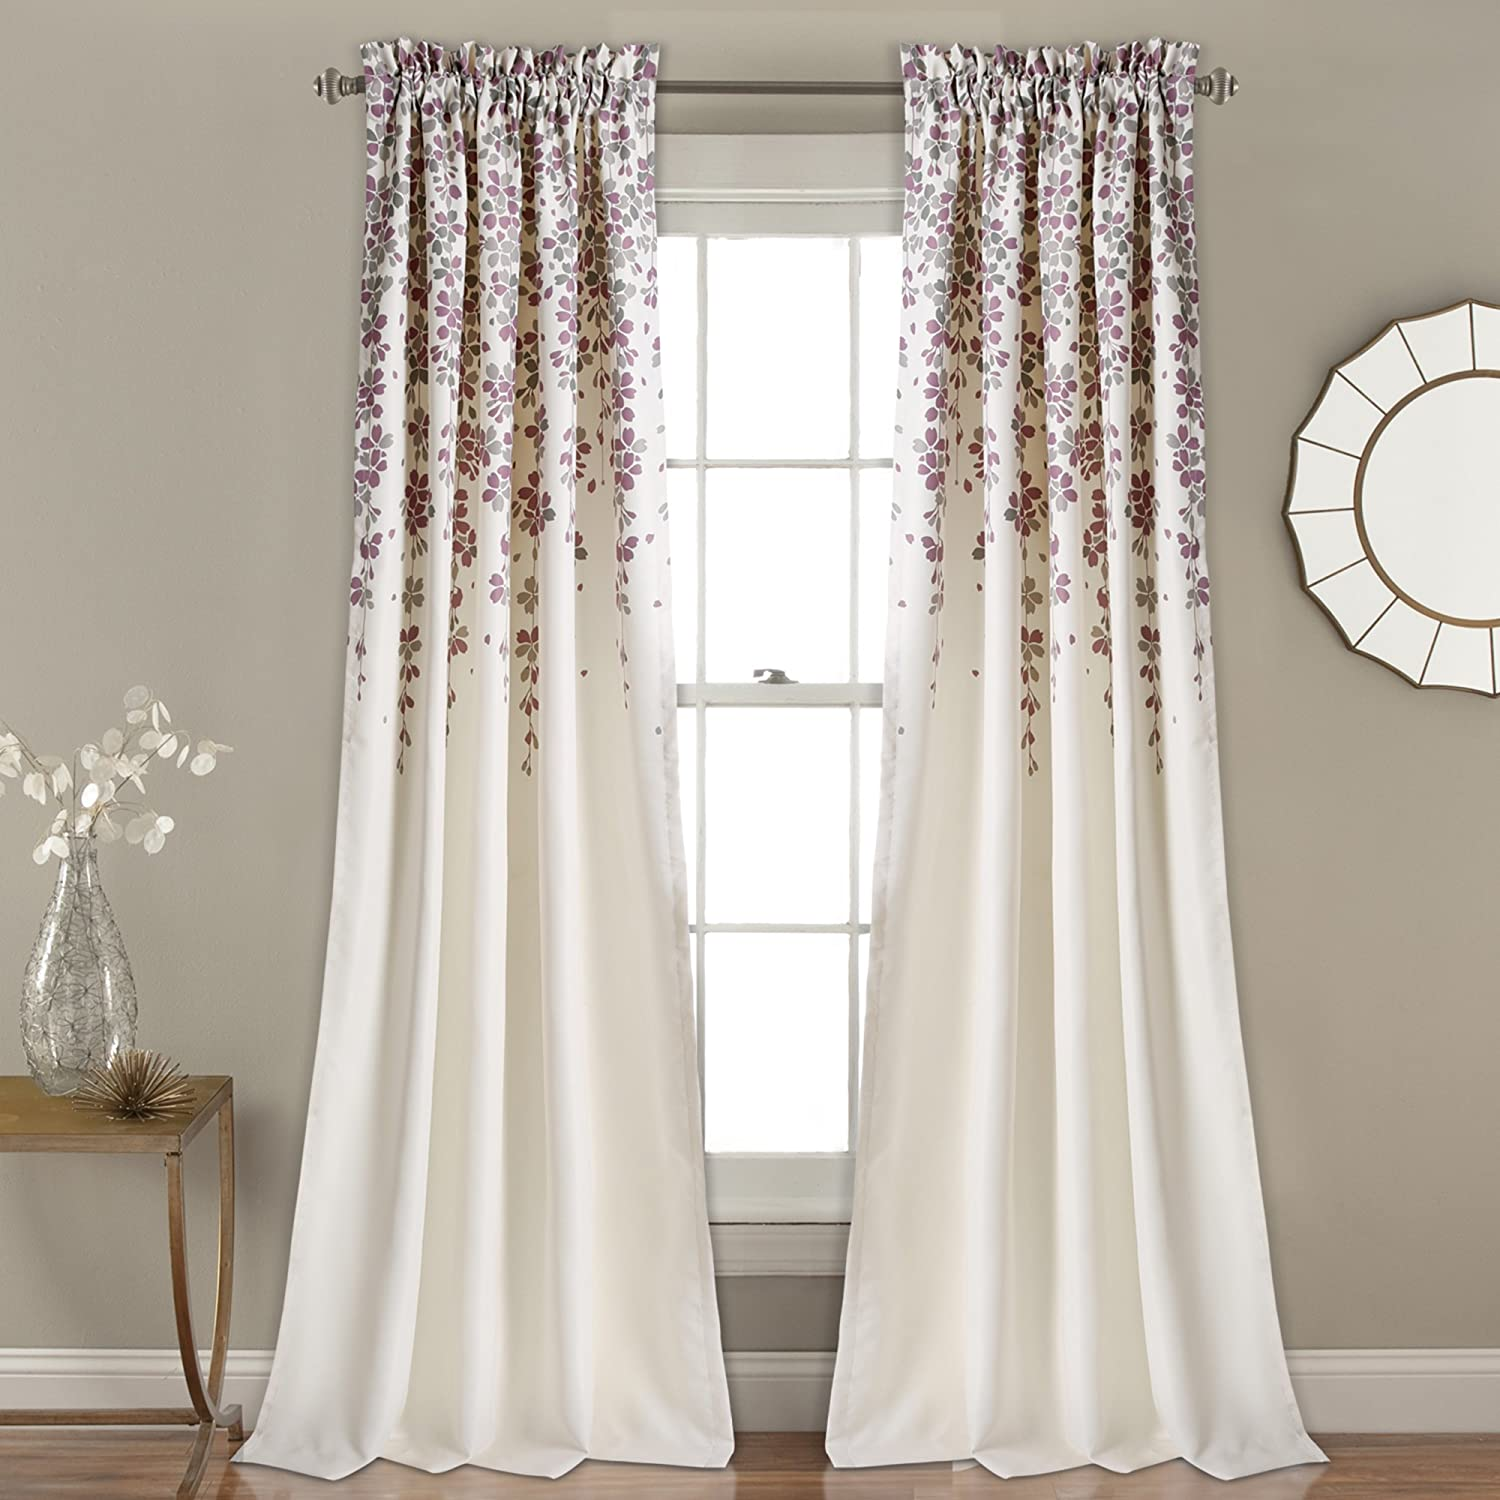 "Lush Decor Weeping Flowers Curtains Room Darkening Window Panel Set (Pair), 84"" x 52"", Purple"